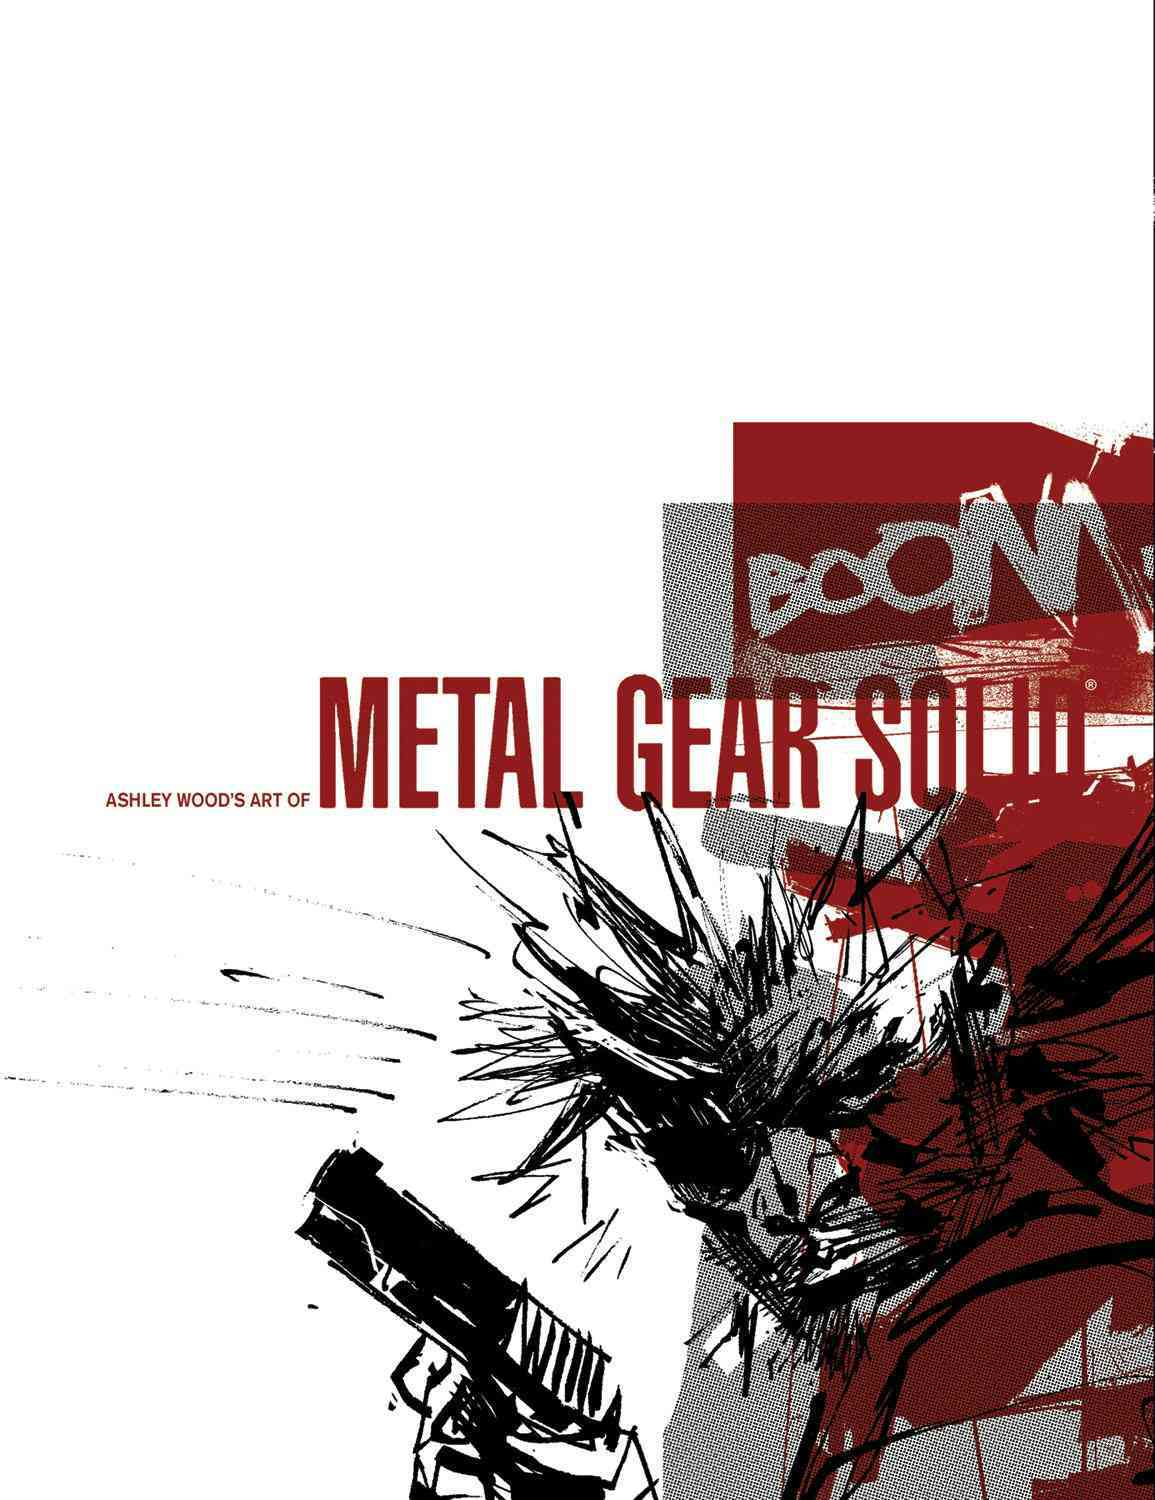 Ashley Wood's Art of Metal Gear Solid (Hardcover)